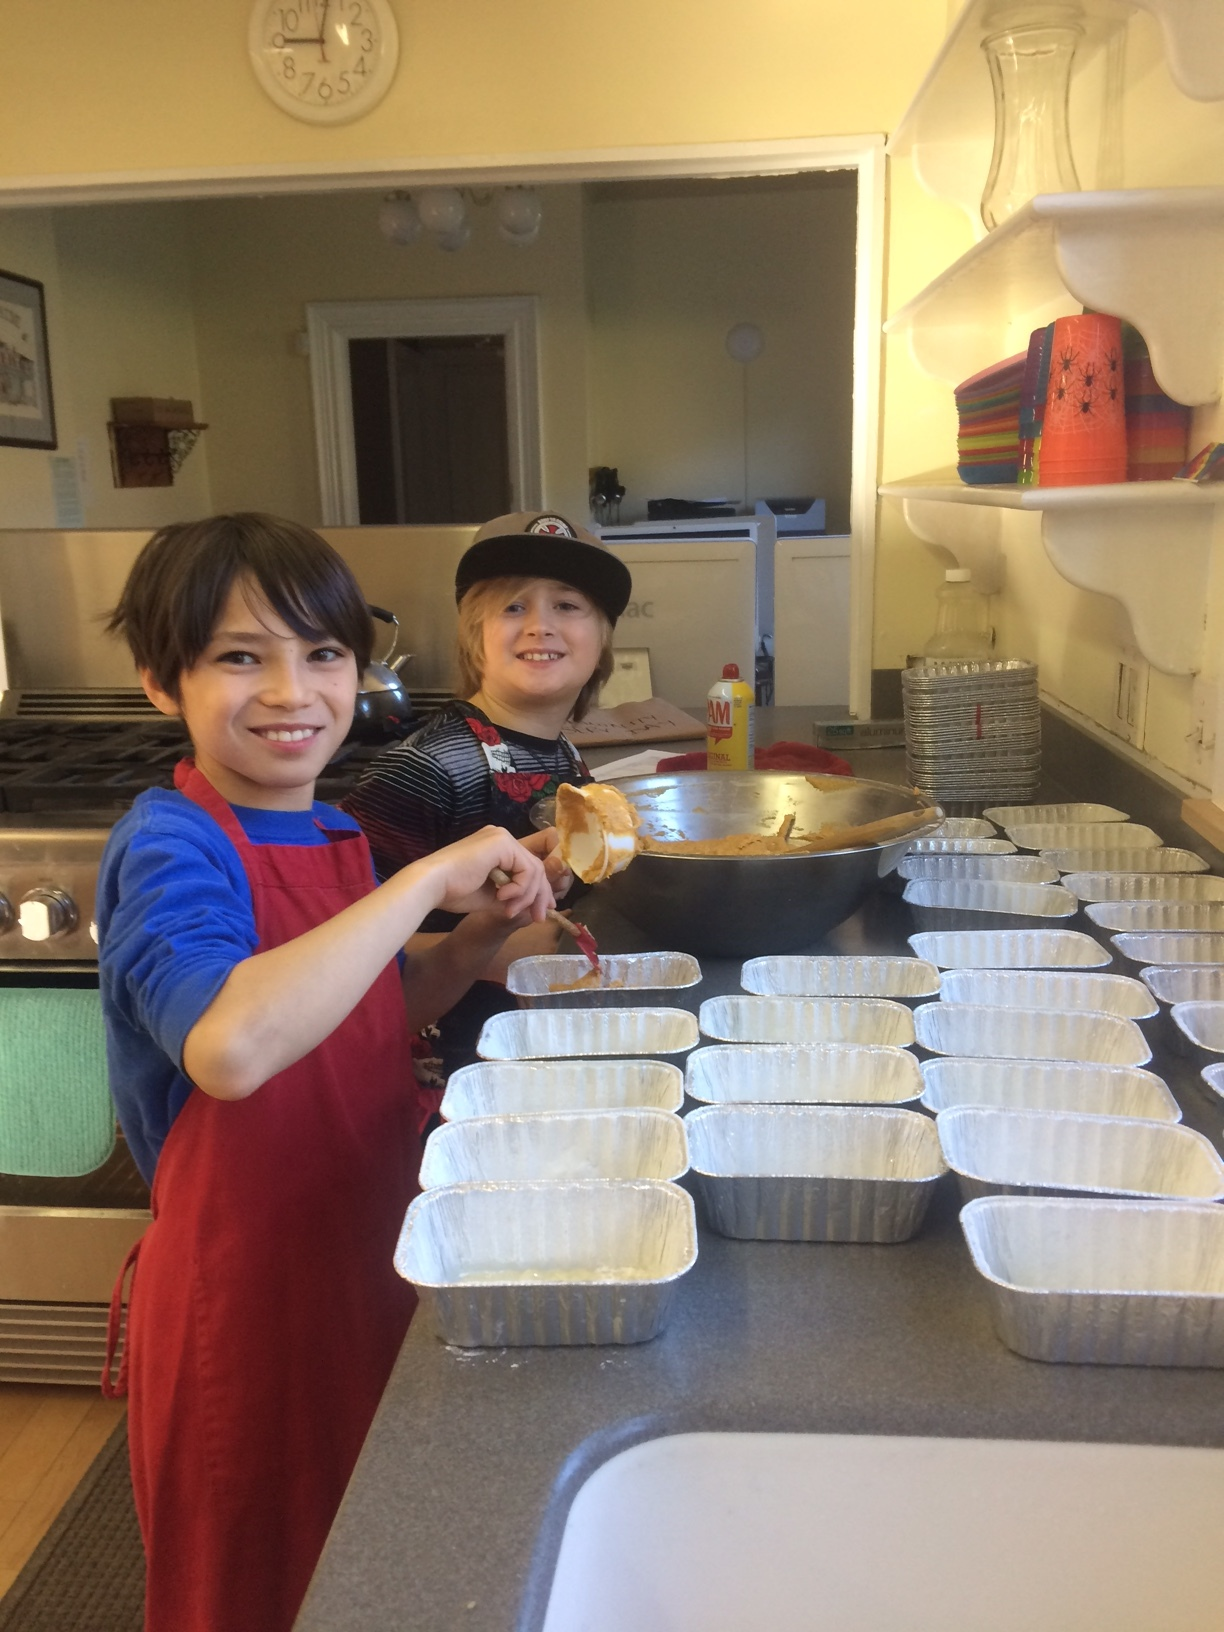 Metellus Harris and Koji Ebbett help prepare 48 loaves of pumpkin bread that were donated to the Lyndon Area Food Shelf as part of The Riverside School Community Service Day.